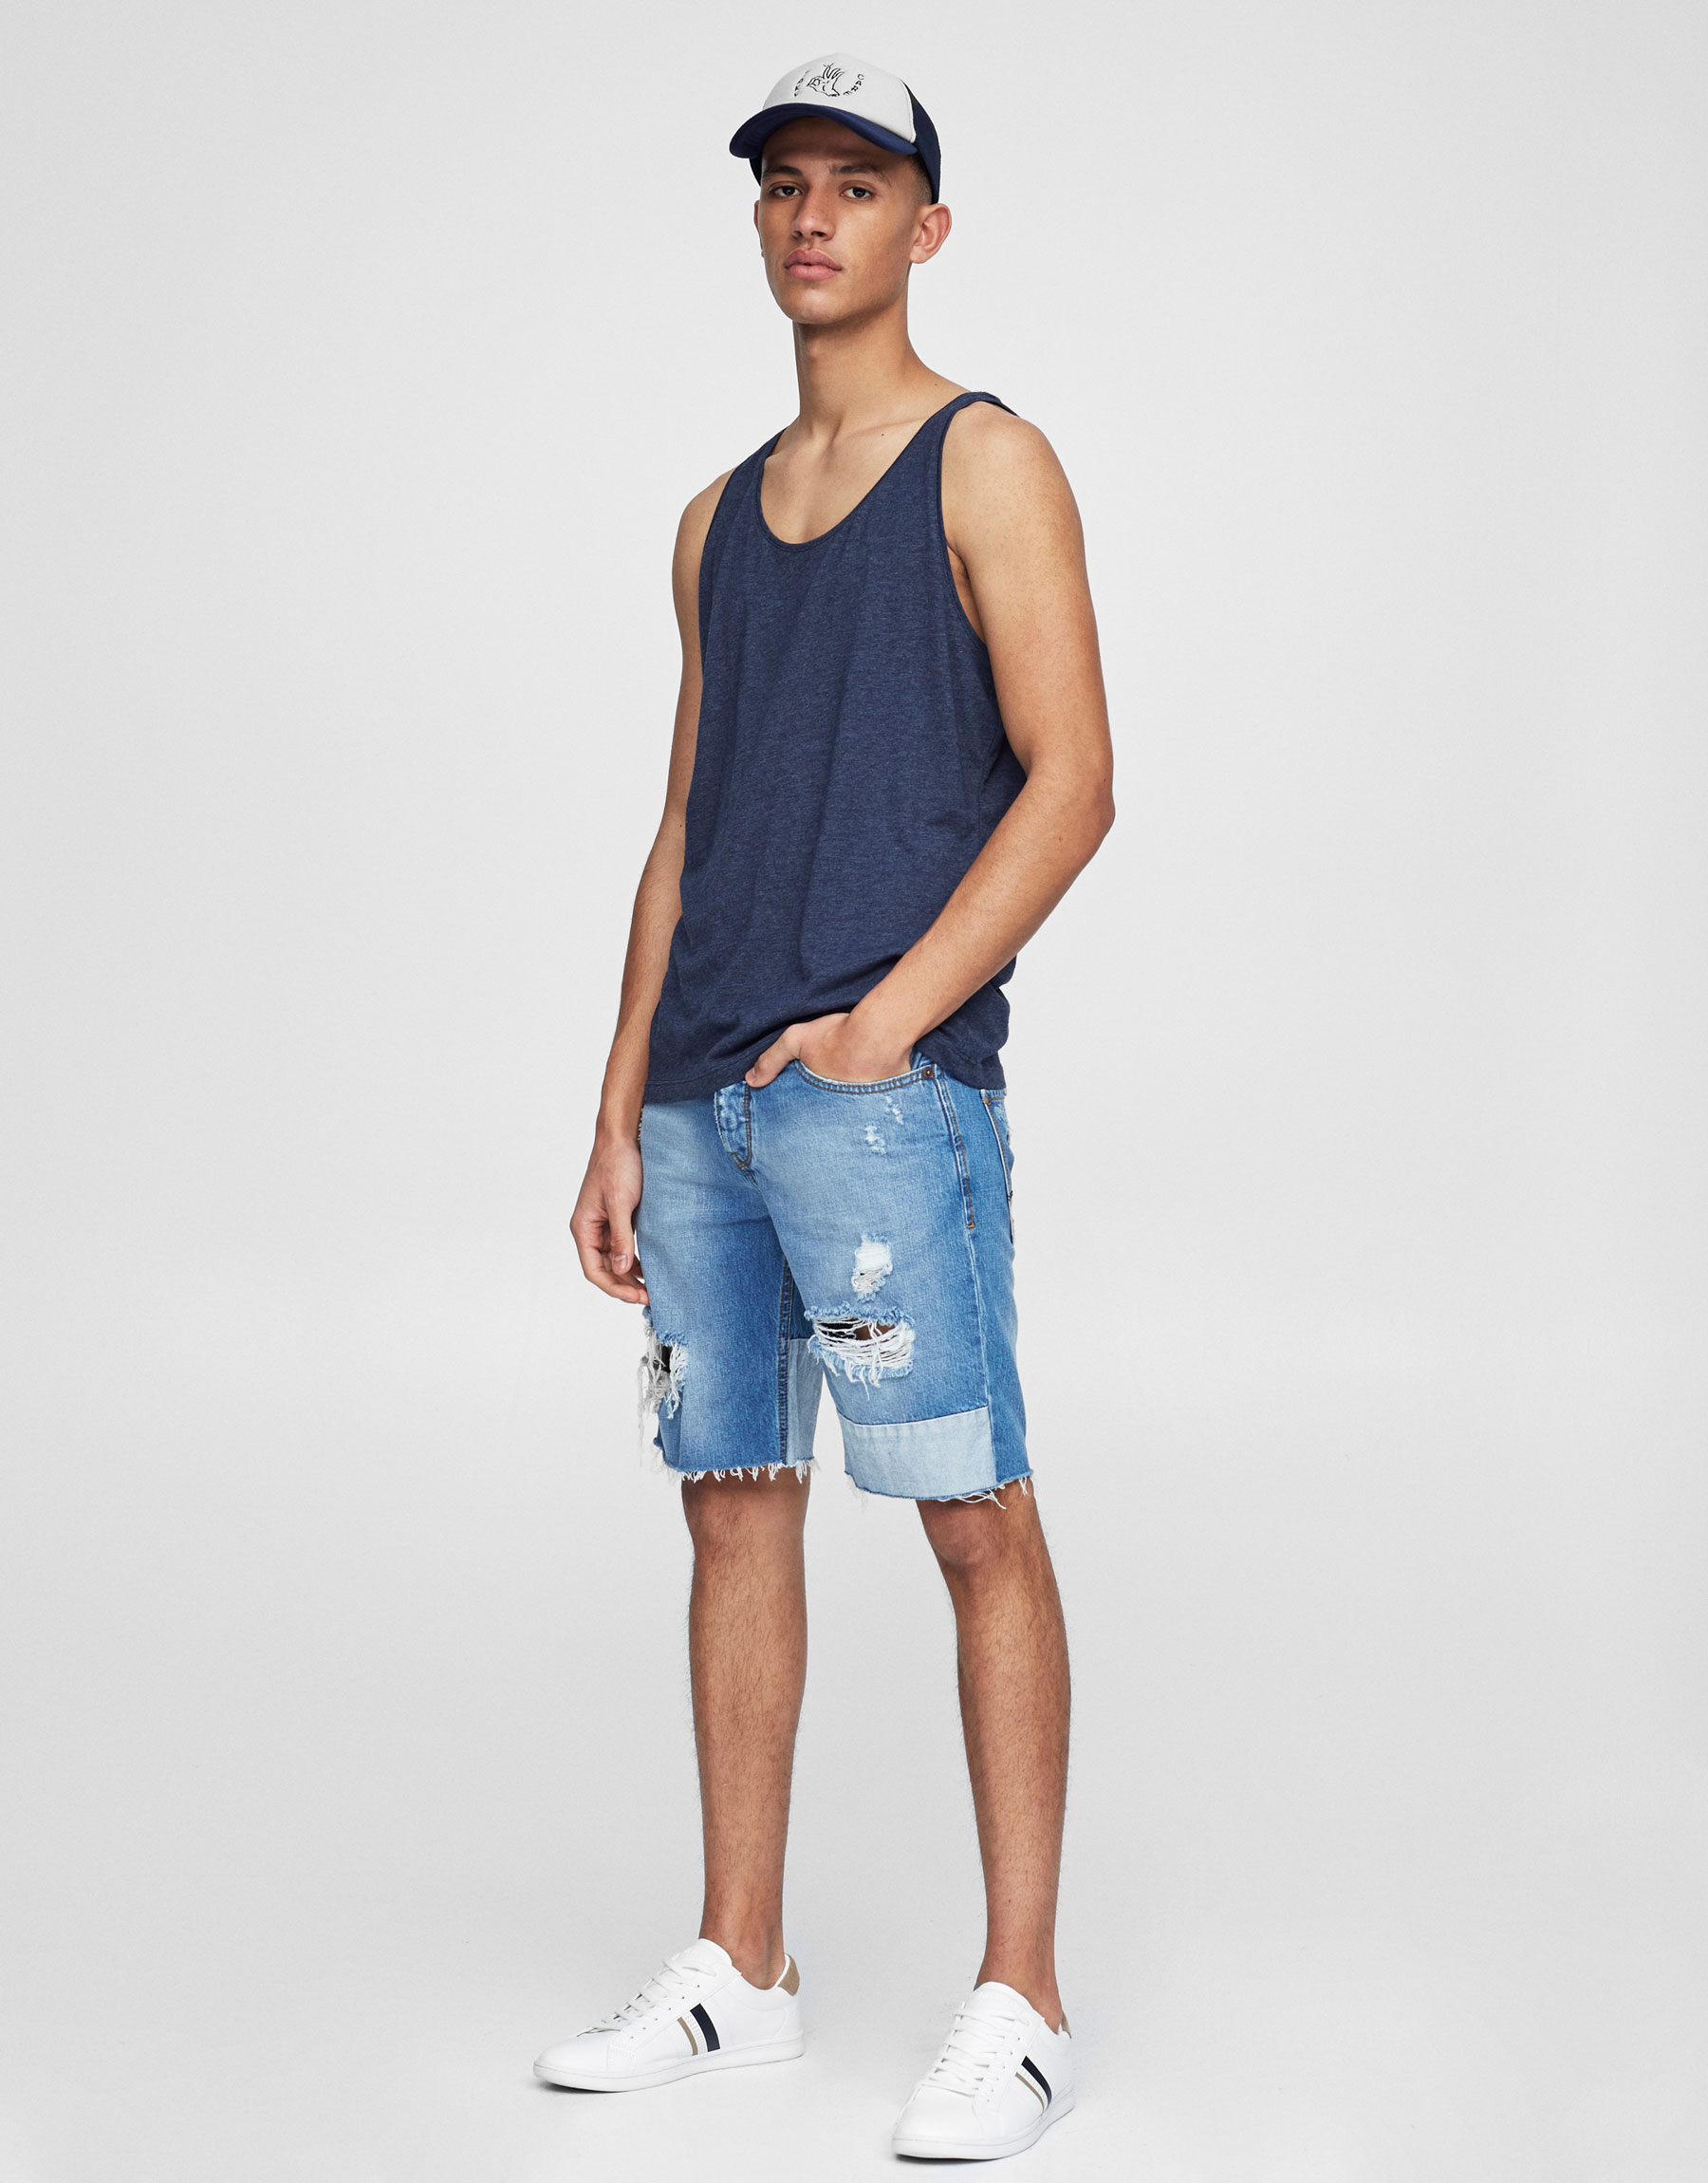 Contrasting ripped denim Bermuda shorts